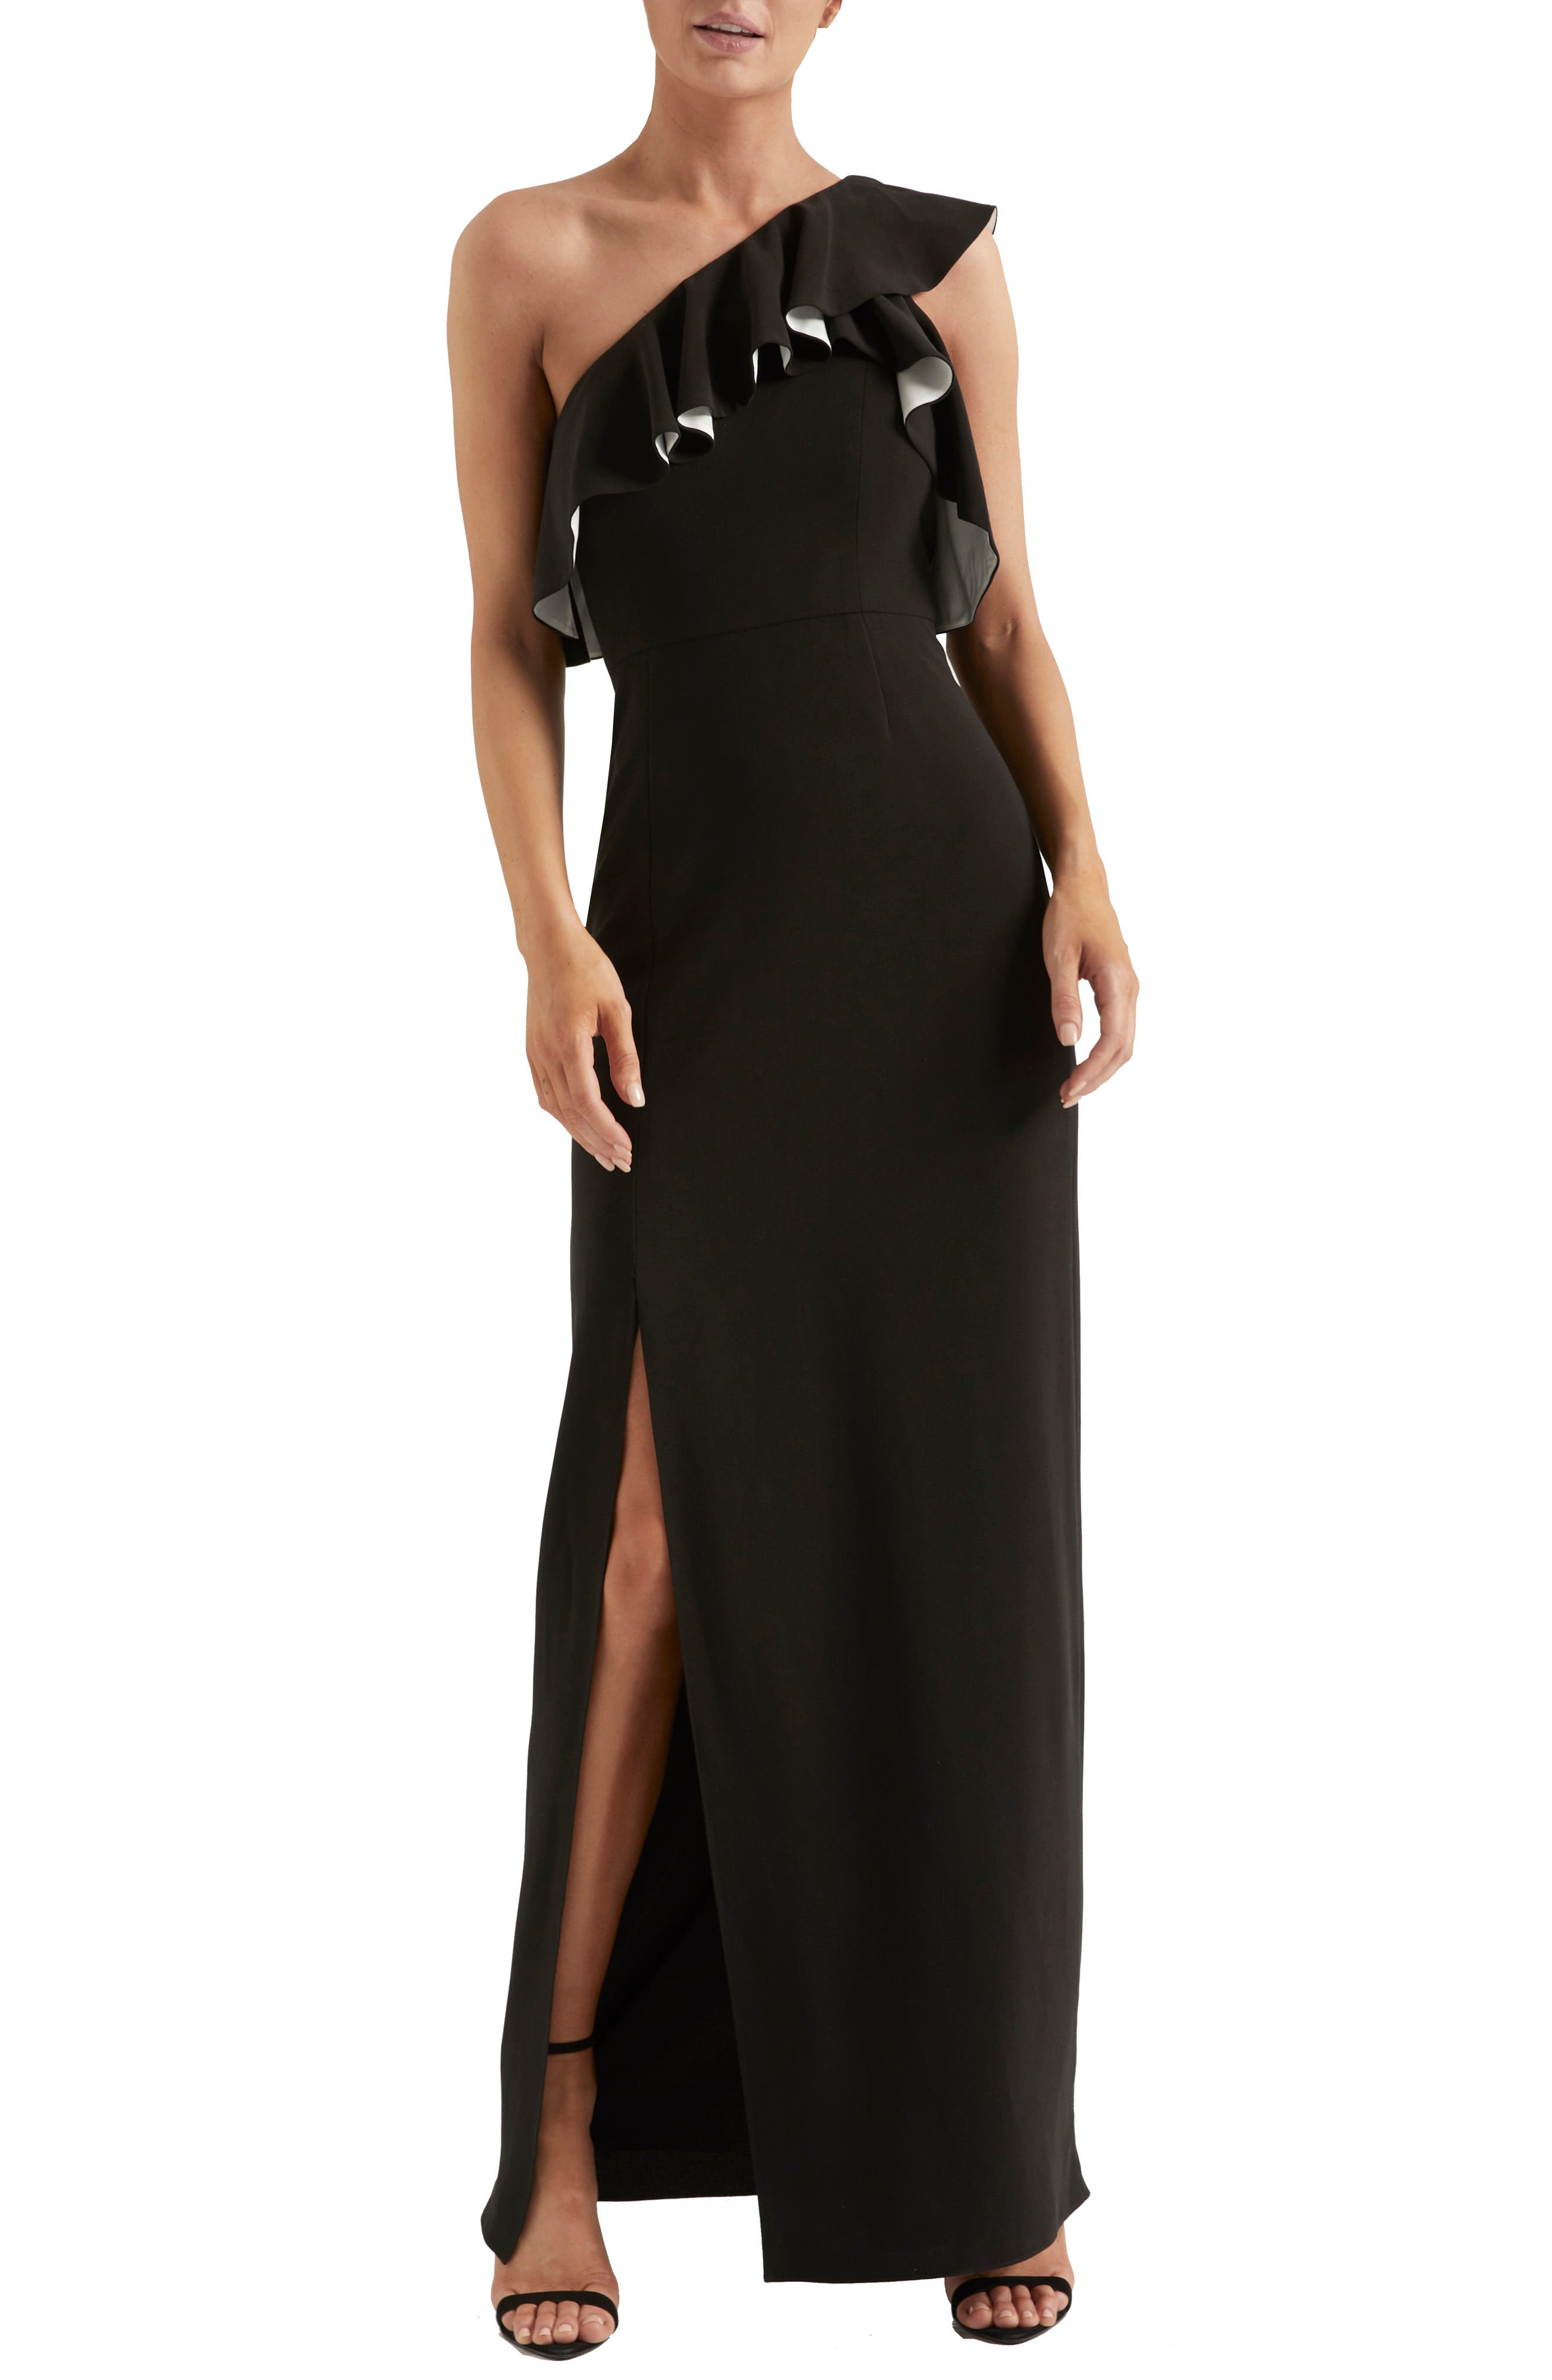 70s Prom, Formal, Evening, Party Dresses Womens Halston Heritage Flounce Crepe Gown $189.00 AT vintagedancer.com